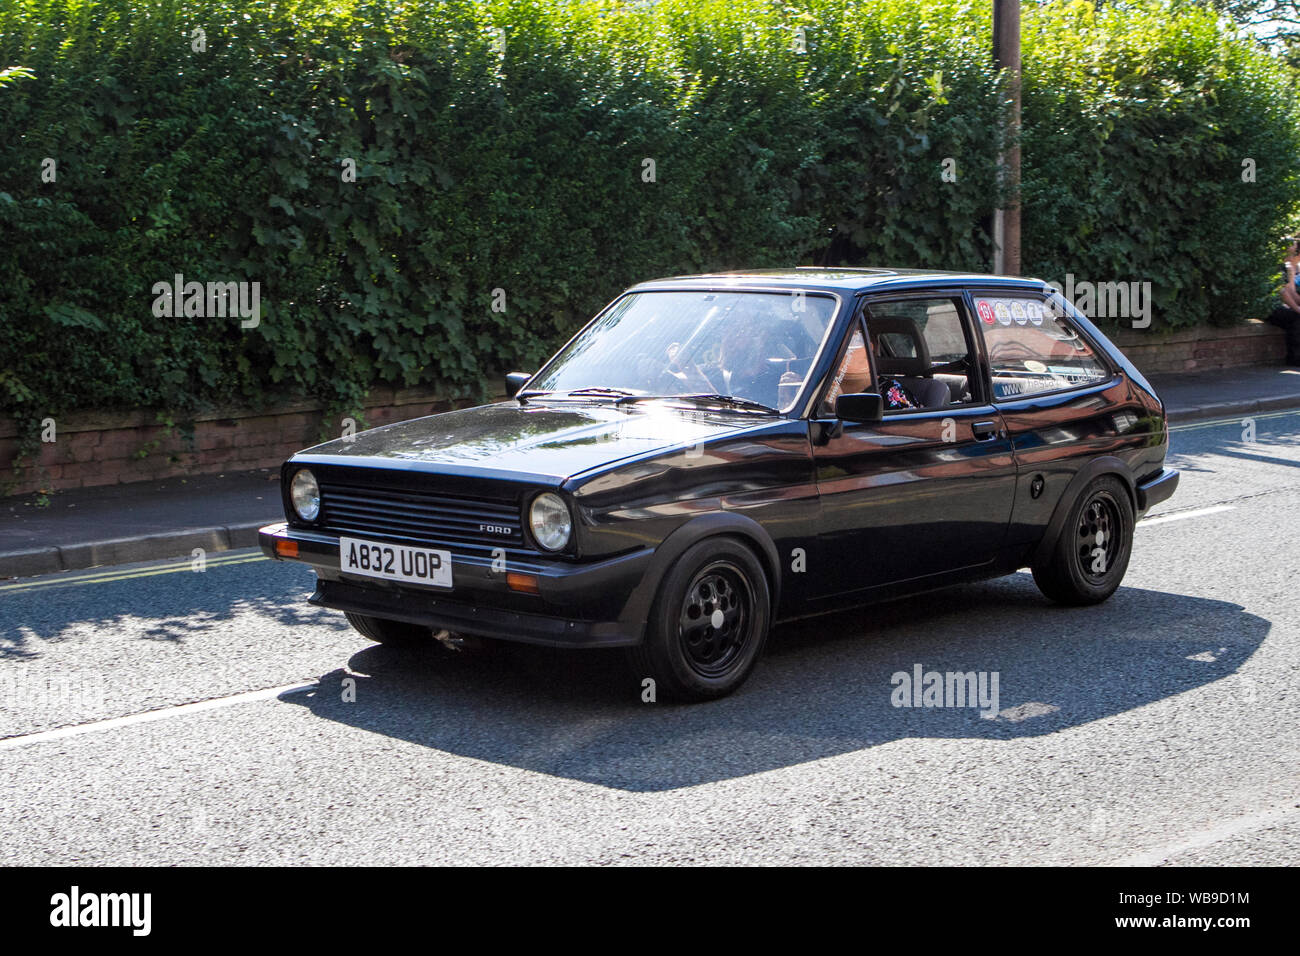 Old Ford Fiesta Stock Photos & Old Ford Fiesta Stock Images